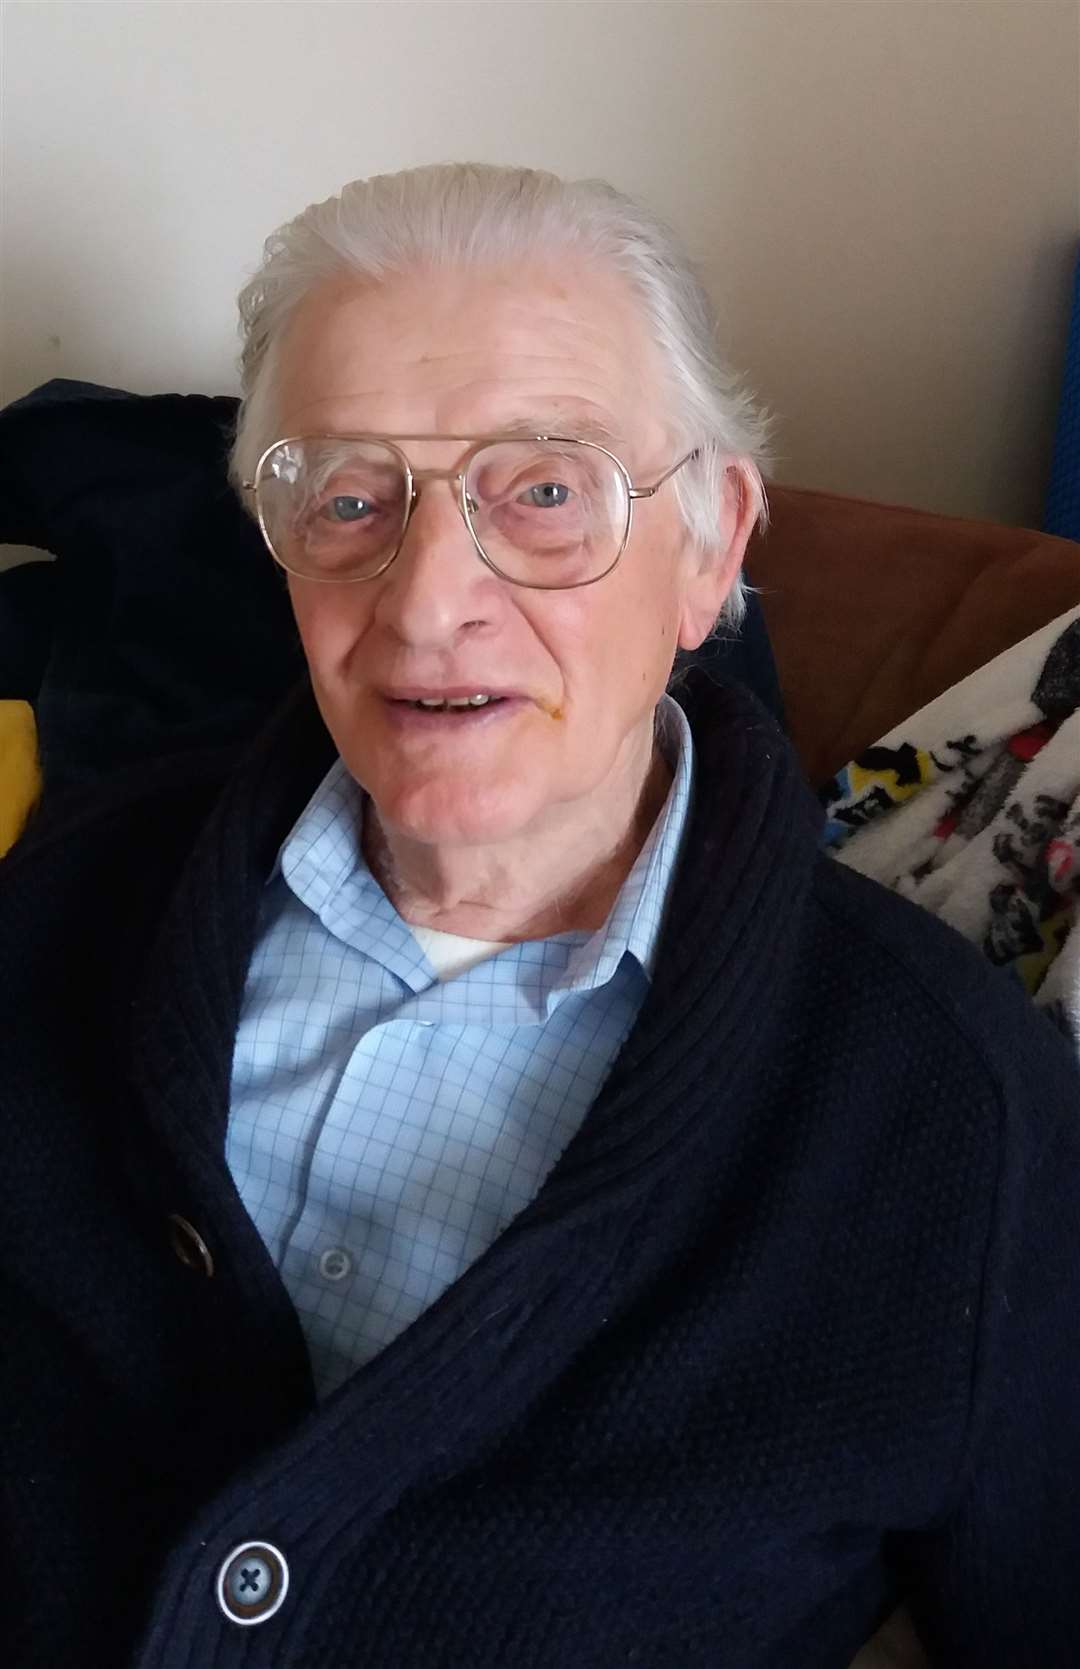 Patrick Clements, 93, from Snodland, was told by Milk & More he had to get an online account, or lose his delivery Picture: Jane Wan